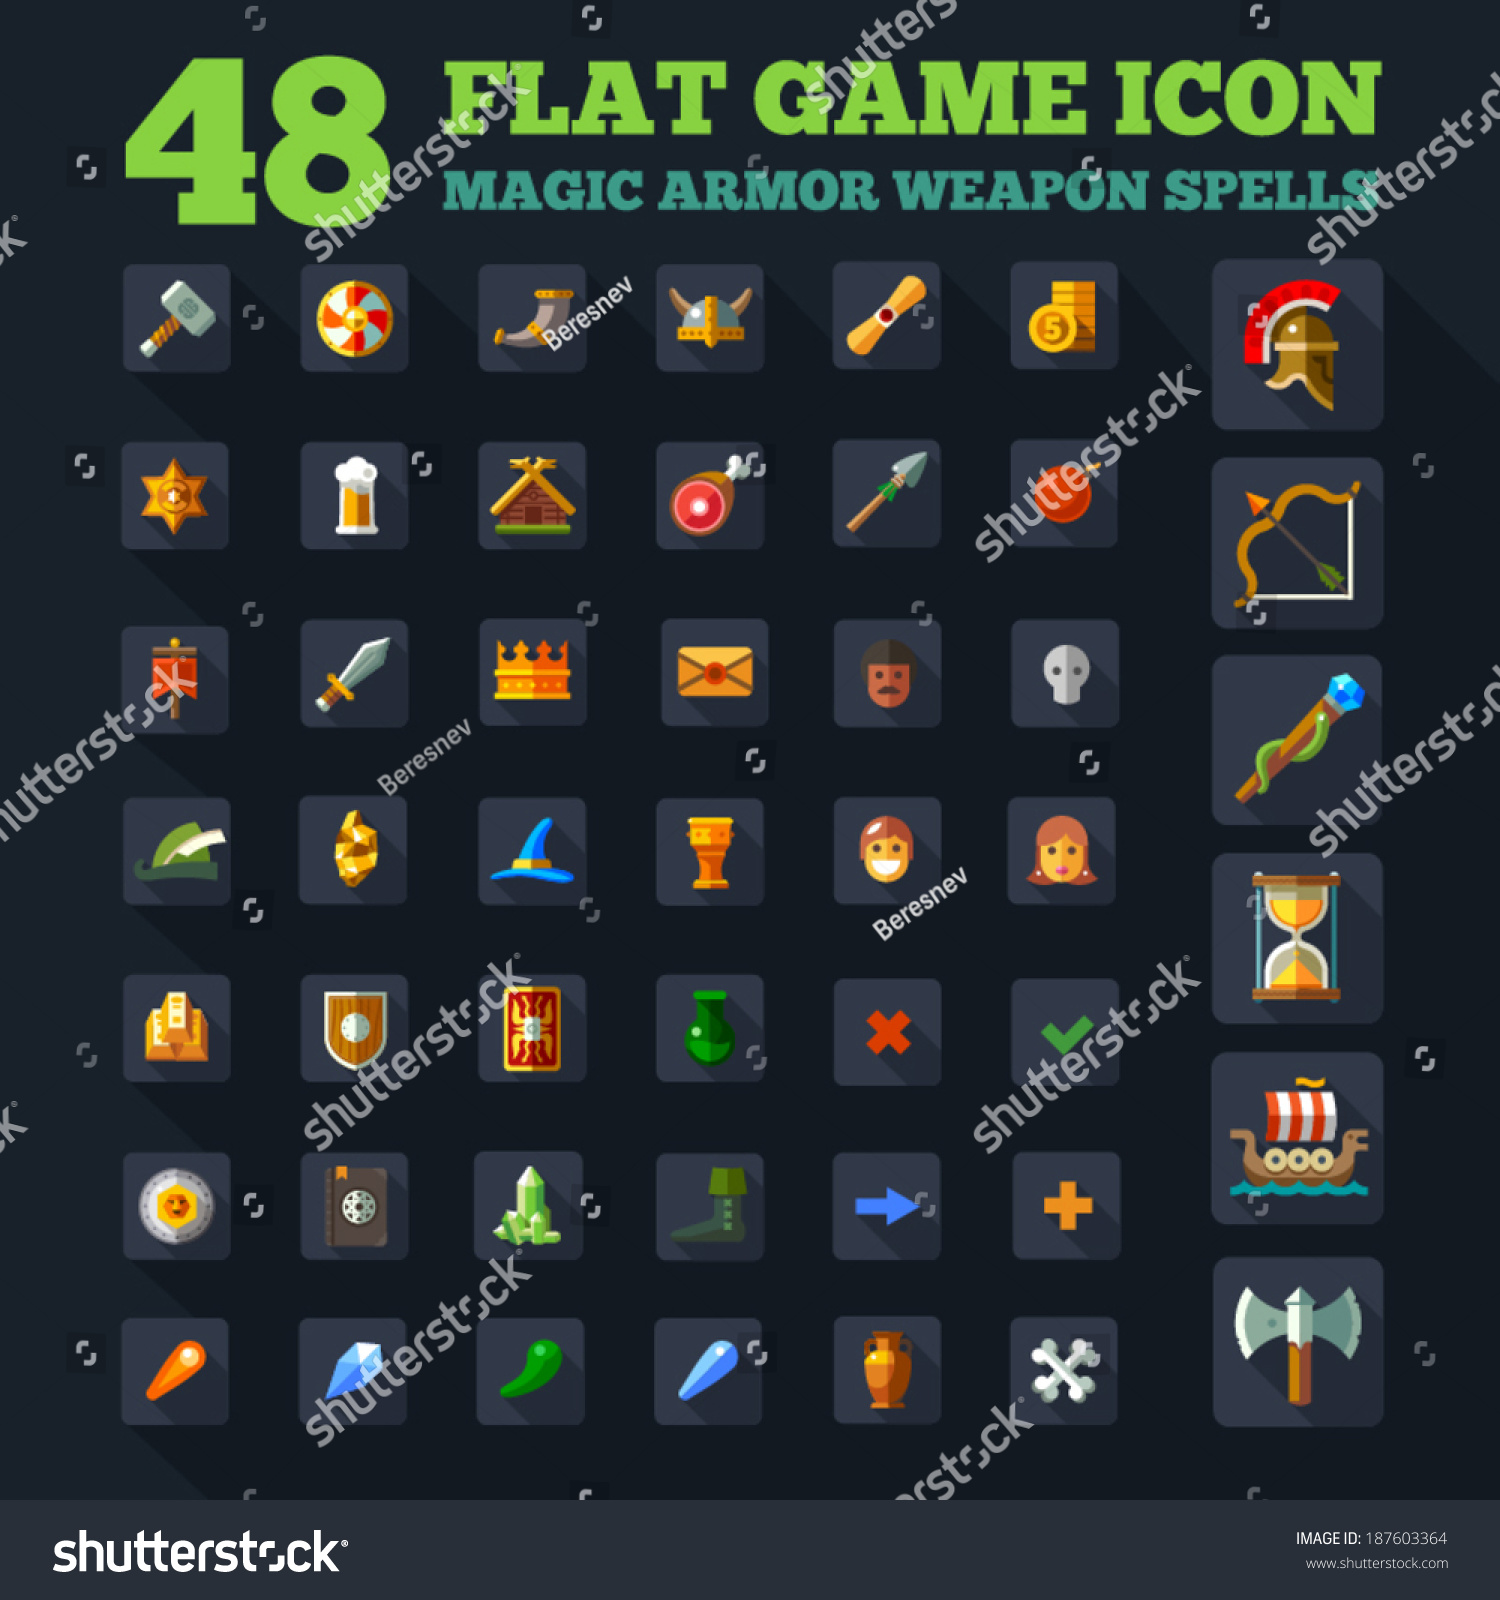 Game Icon Set Vector Game Flat Stock Vector 187603364 - Shutterstock